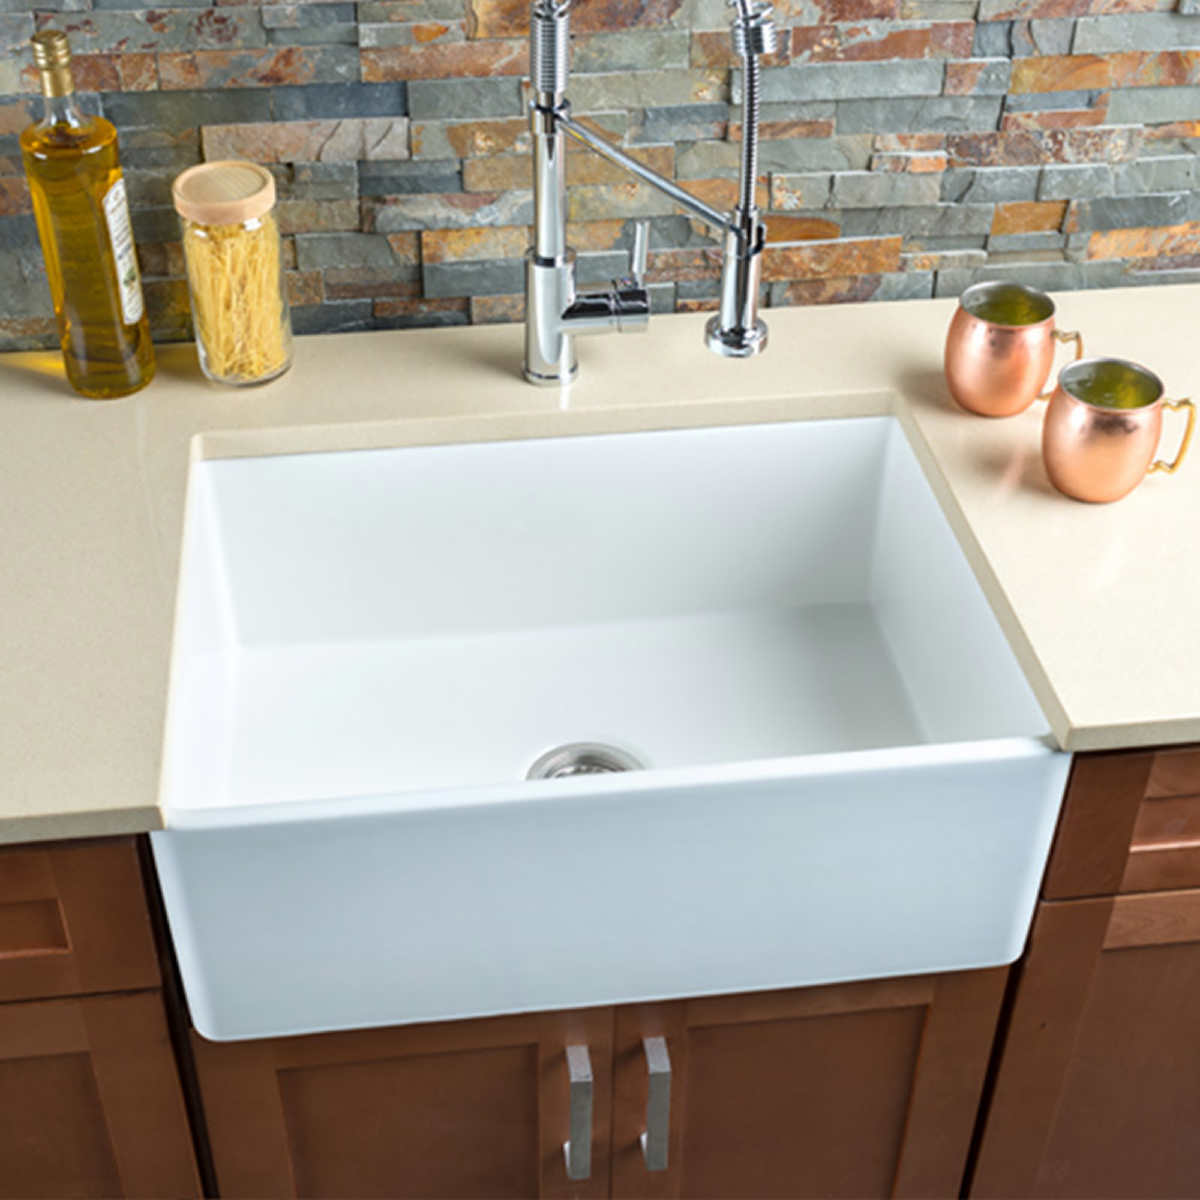 Hahn Copper Single Bowl Farmhouse Sink